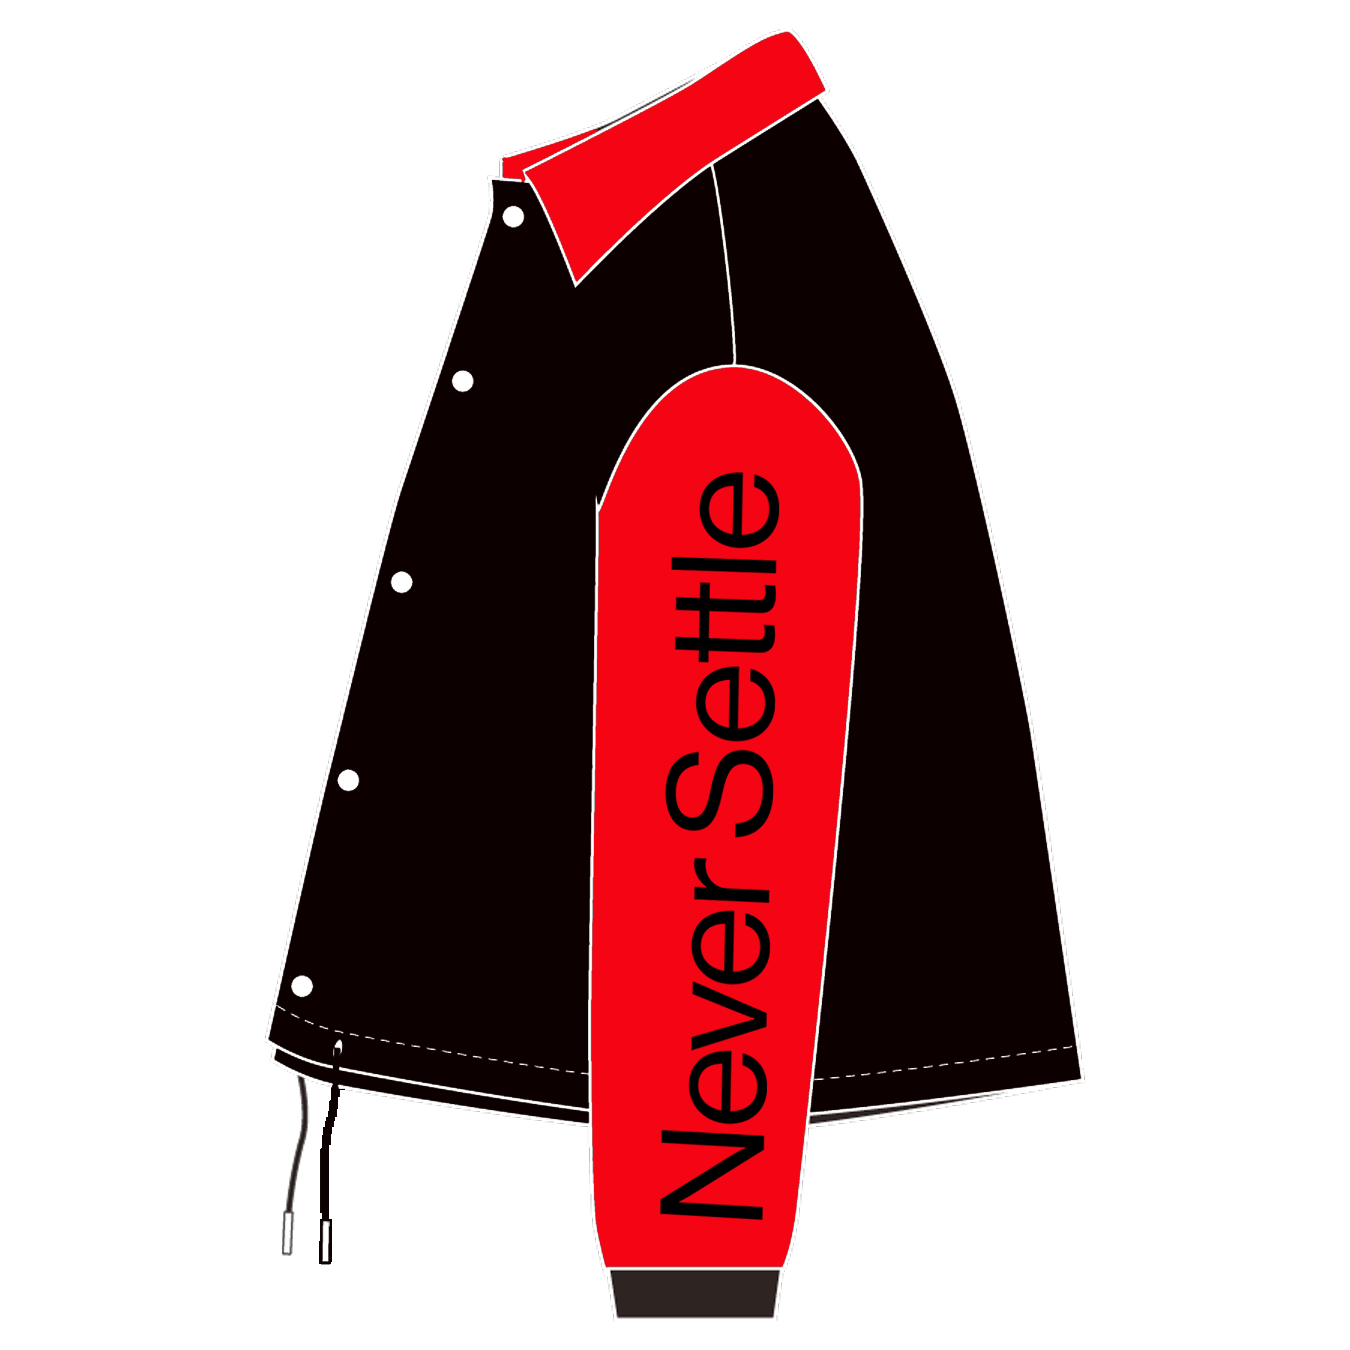 OnePlus-jacket-tp-sleeve-min.png